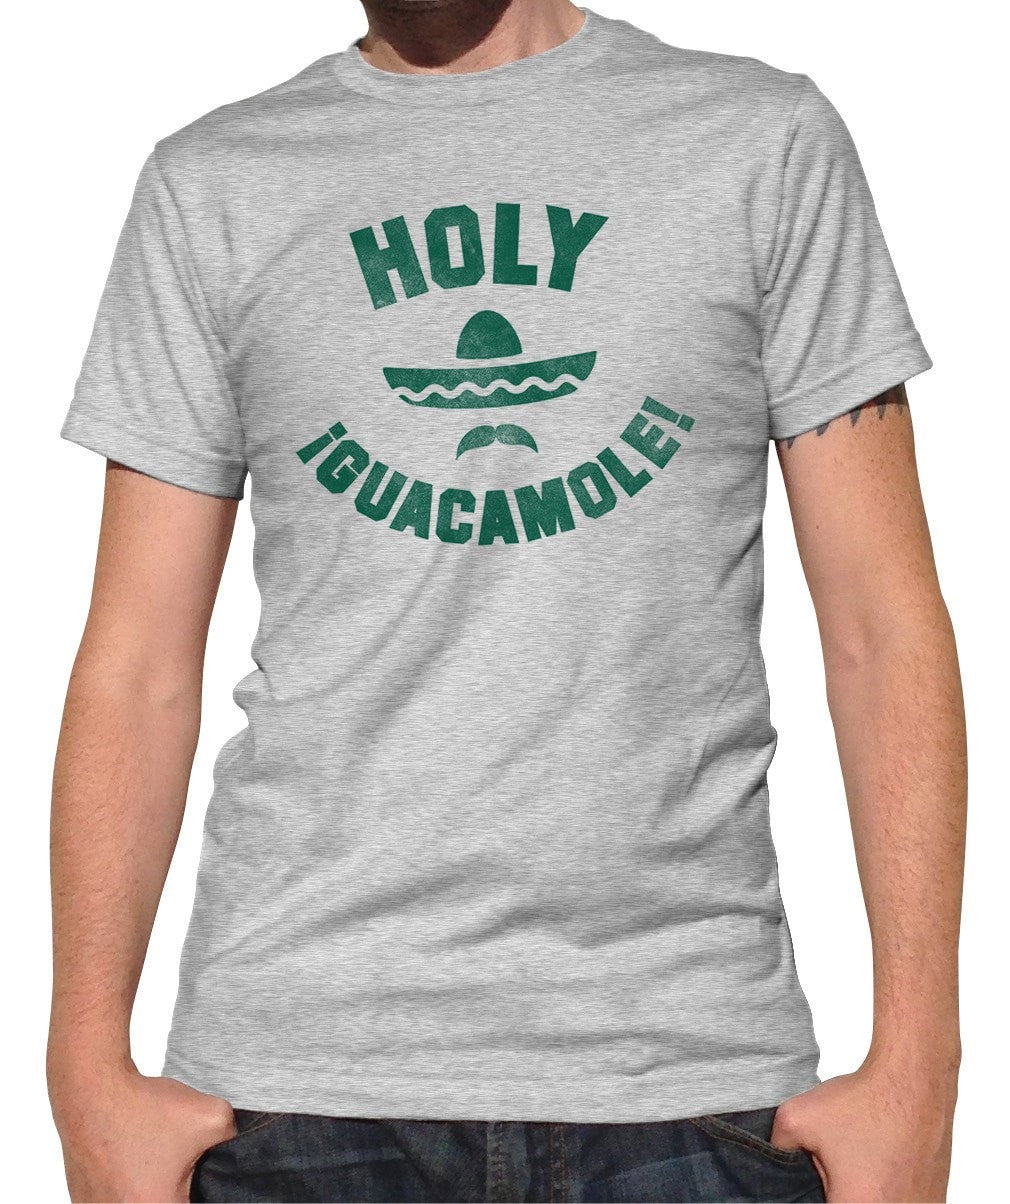 Men's Holy Guacamole T-Shirt Funny Hipster Foodie